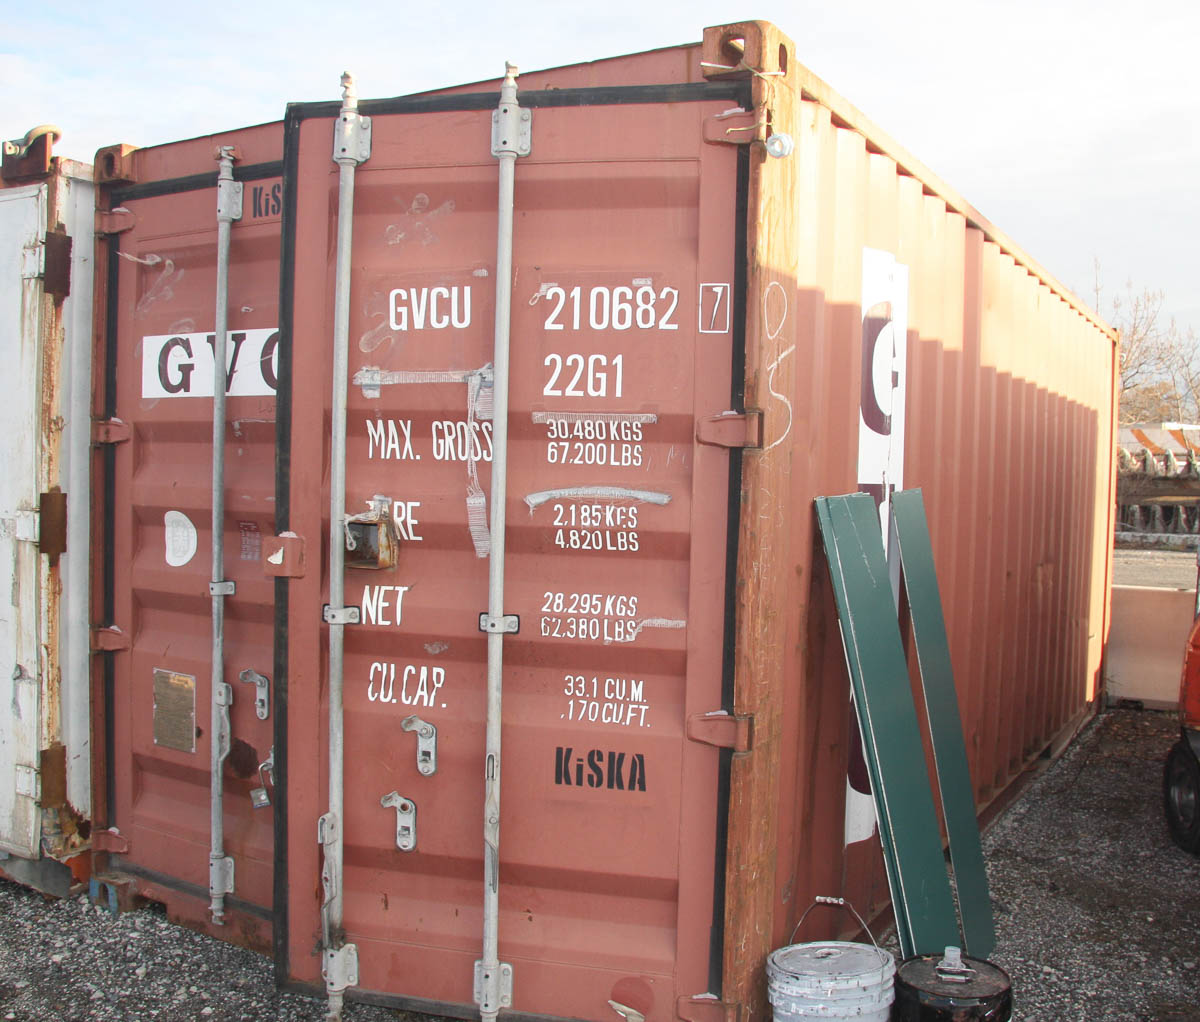 20' SHIPPING CONTAINER (GVC) [LOCATED @ 6 CANAL ROAD, PELHAM, NY (BRONX)] - Image 2 of 4